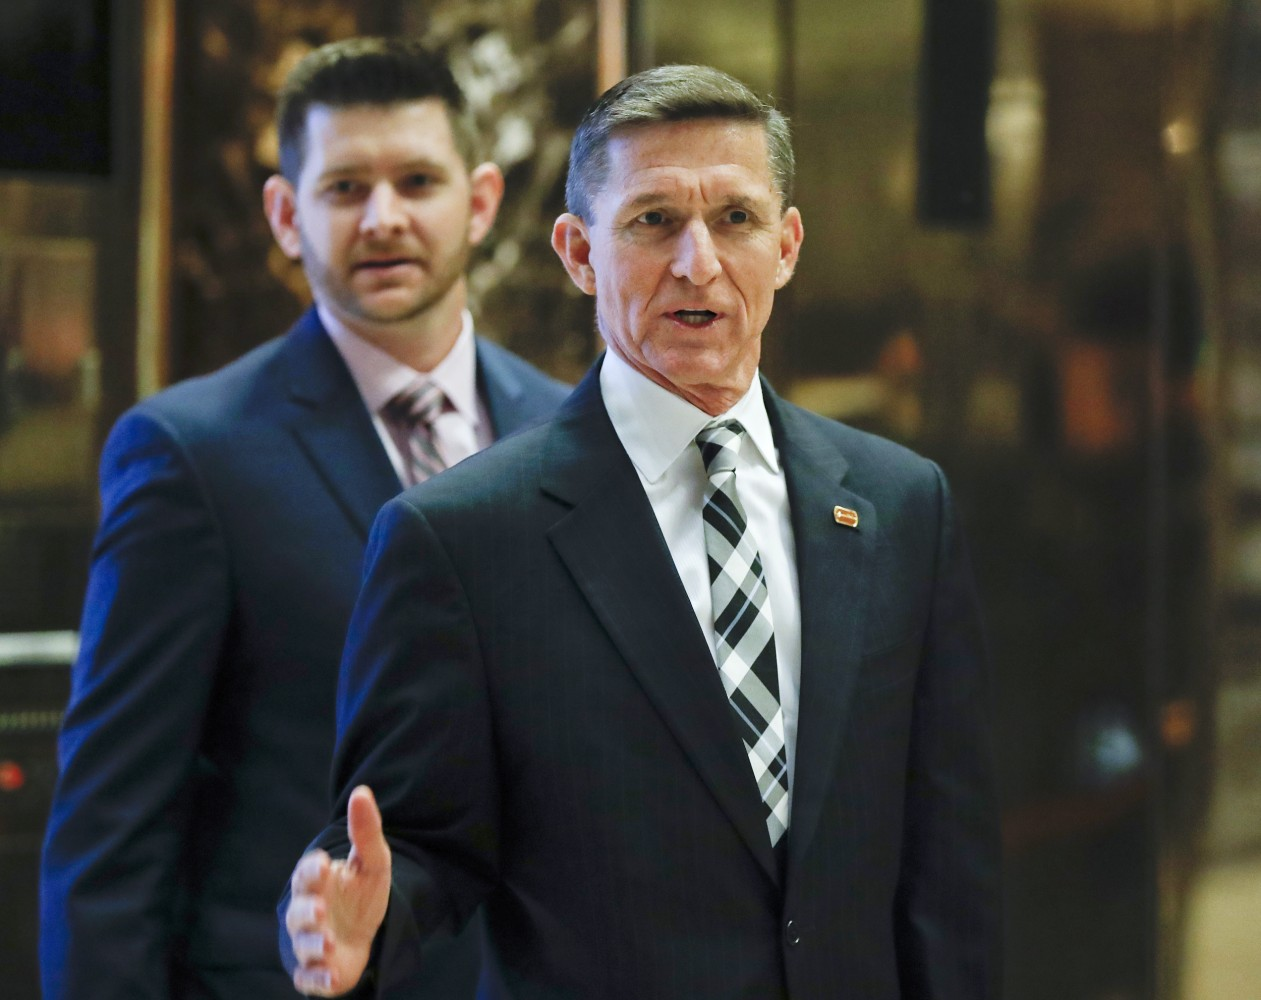 Donald Trump and Russia: Michael Flynn facing nuclear questions